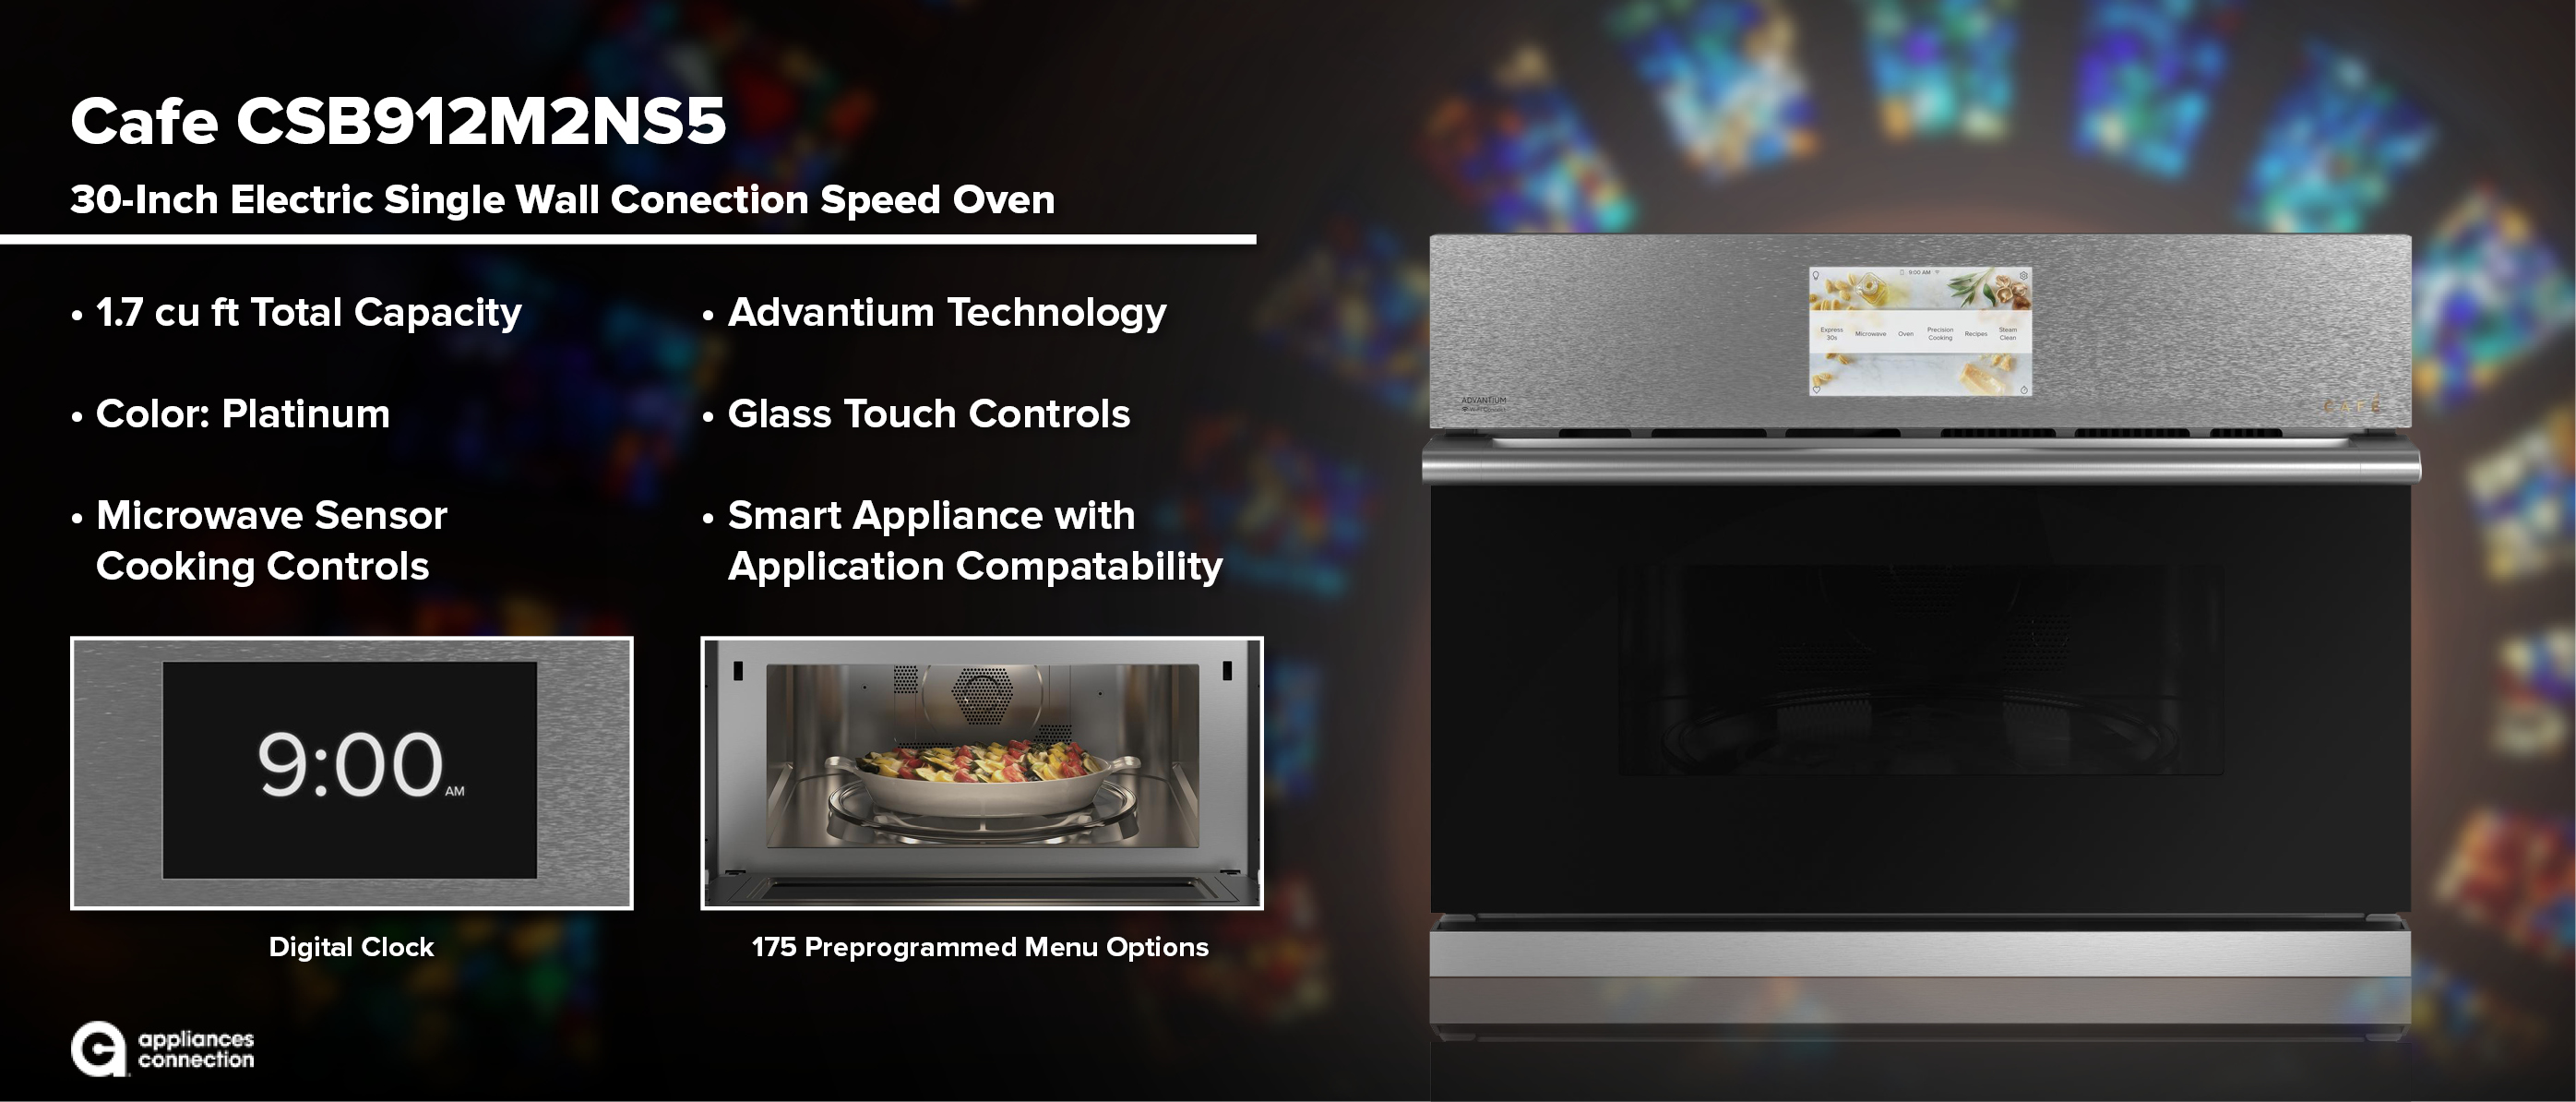 CSB912M2NS5 Café Modern Glass Series 30 Inch Platinum Electric Single Wall Convection Speed Oven